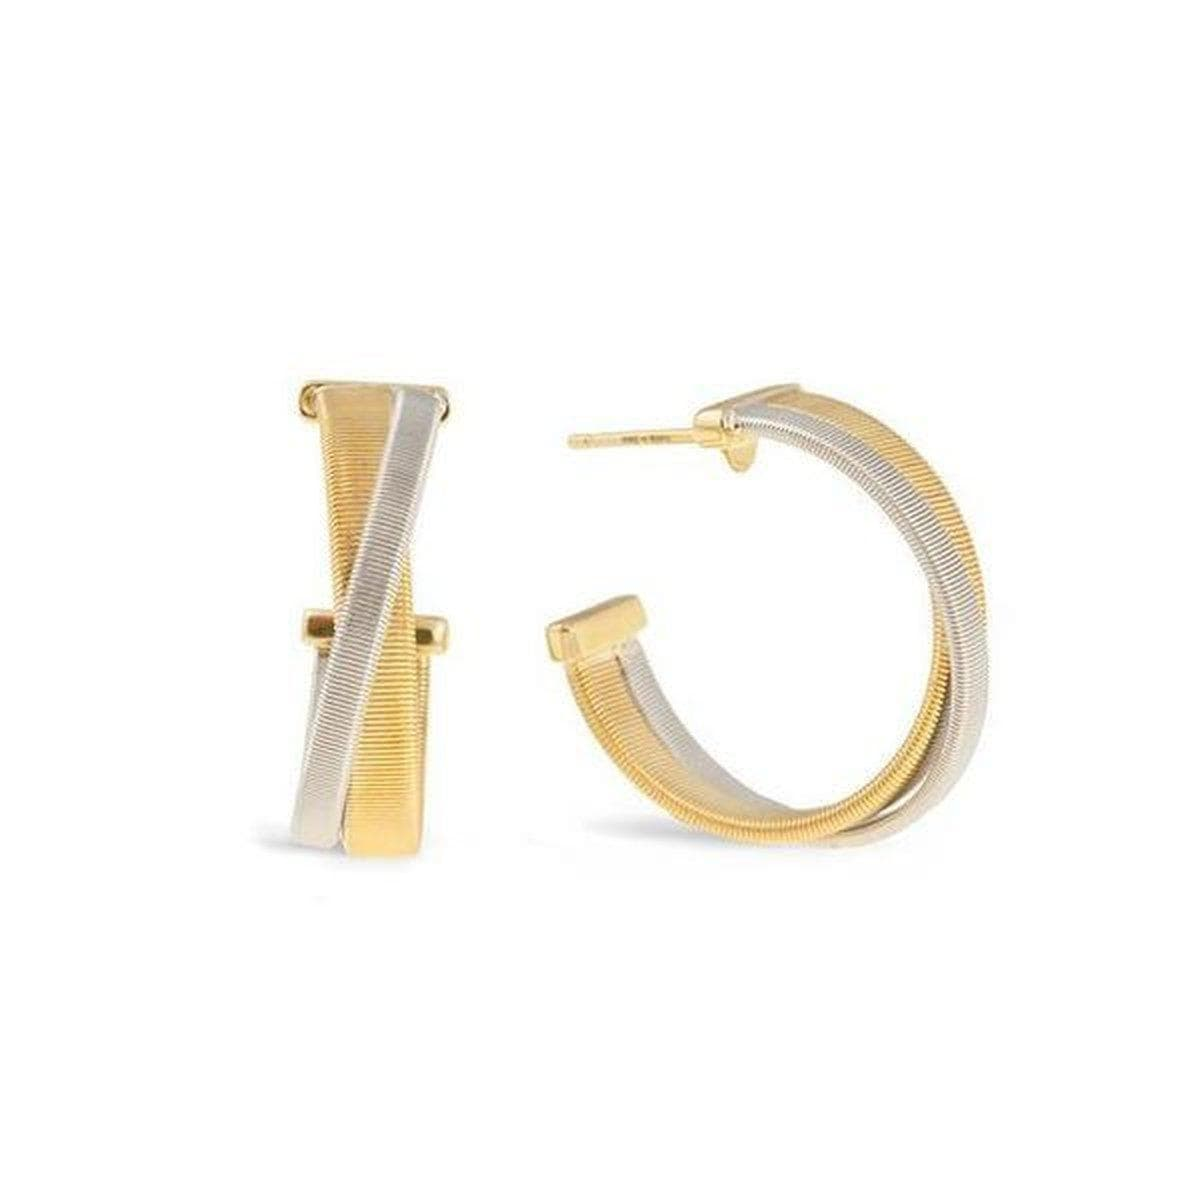 18K Masai Earrings - OG349 YW-Marco Bicego-Renee Taylor Gallery